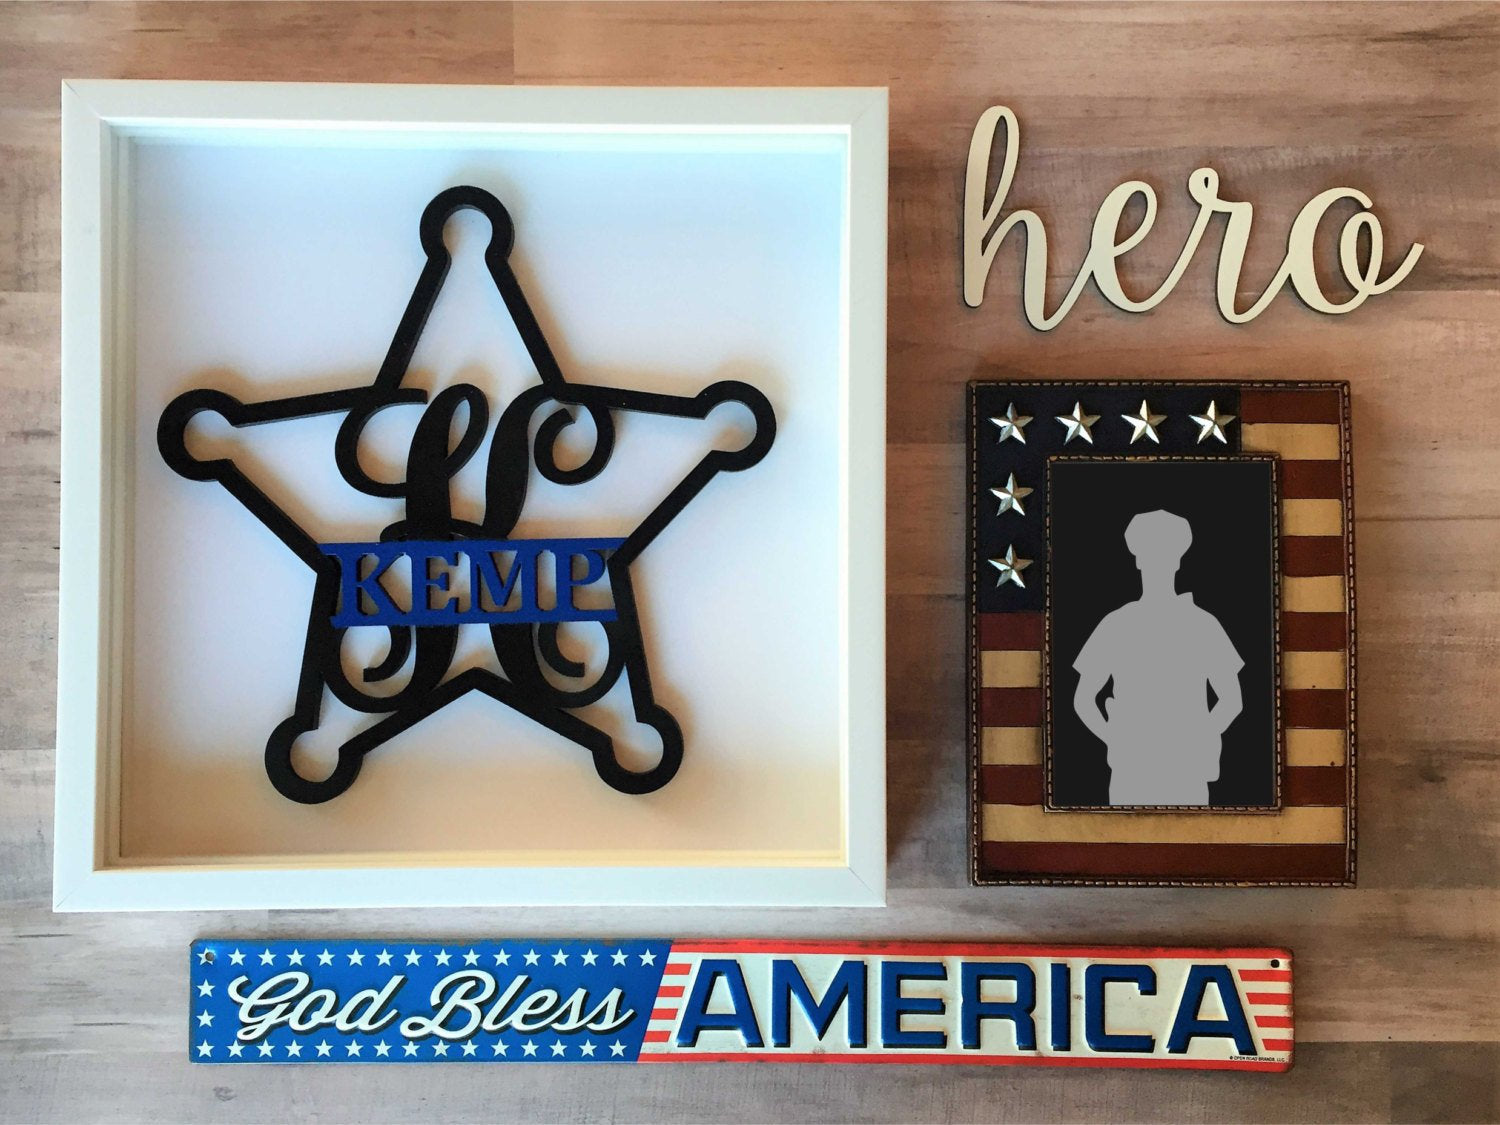 Police Sheriff Deputy Badge Cutout Laser SVG Cut File for Glowforge Epilog Projects Laser Cutting Download